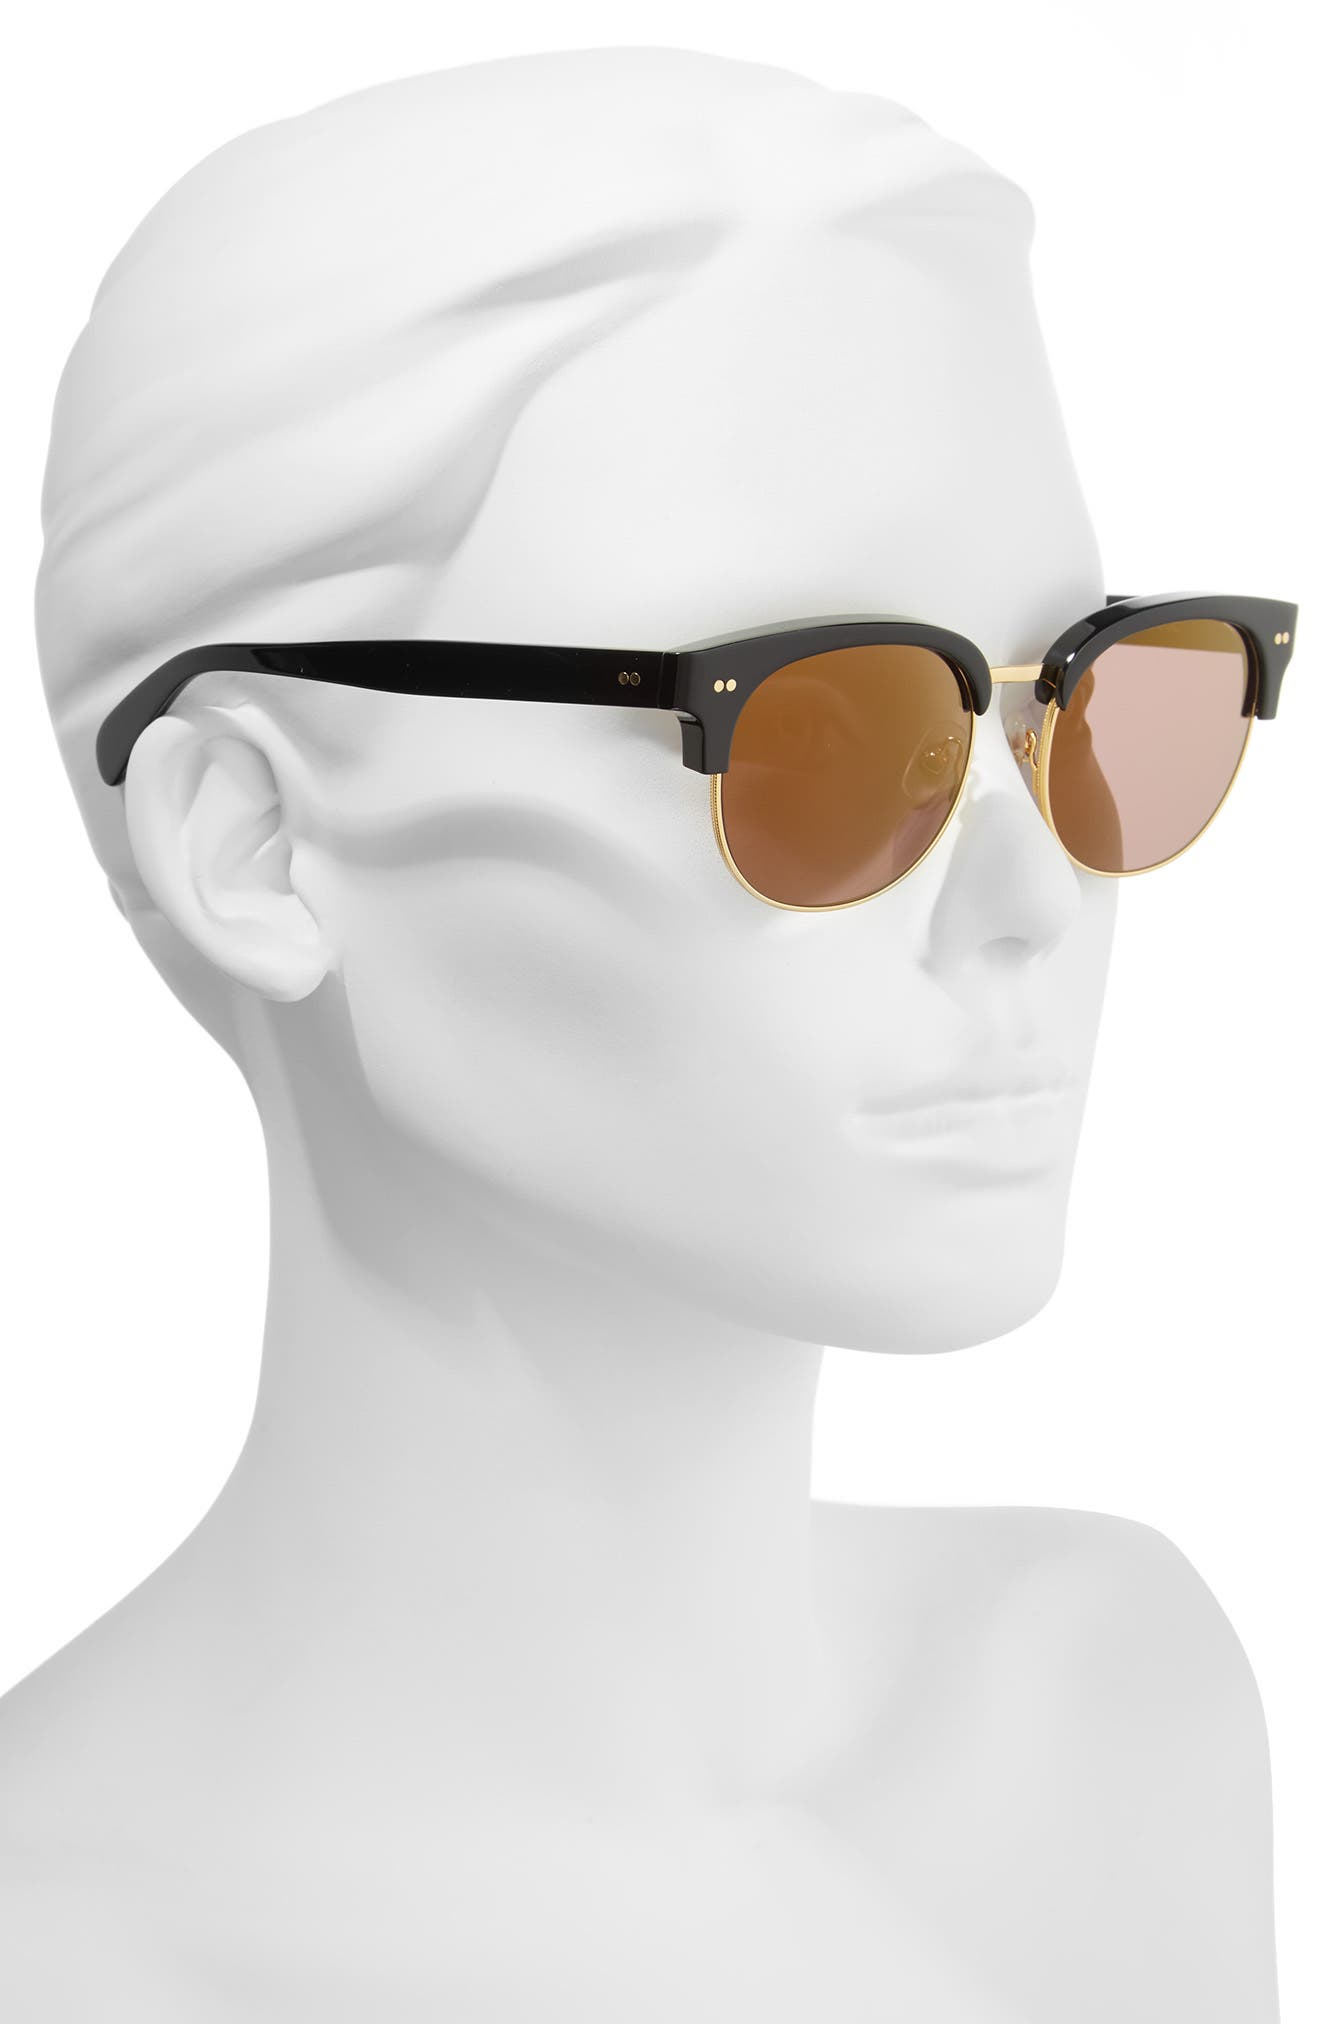 Clubhouse 50mm Semi-Rimless Sunglasses,                             Alternate thumbnail 2, color,                             BLACK/ GOLD